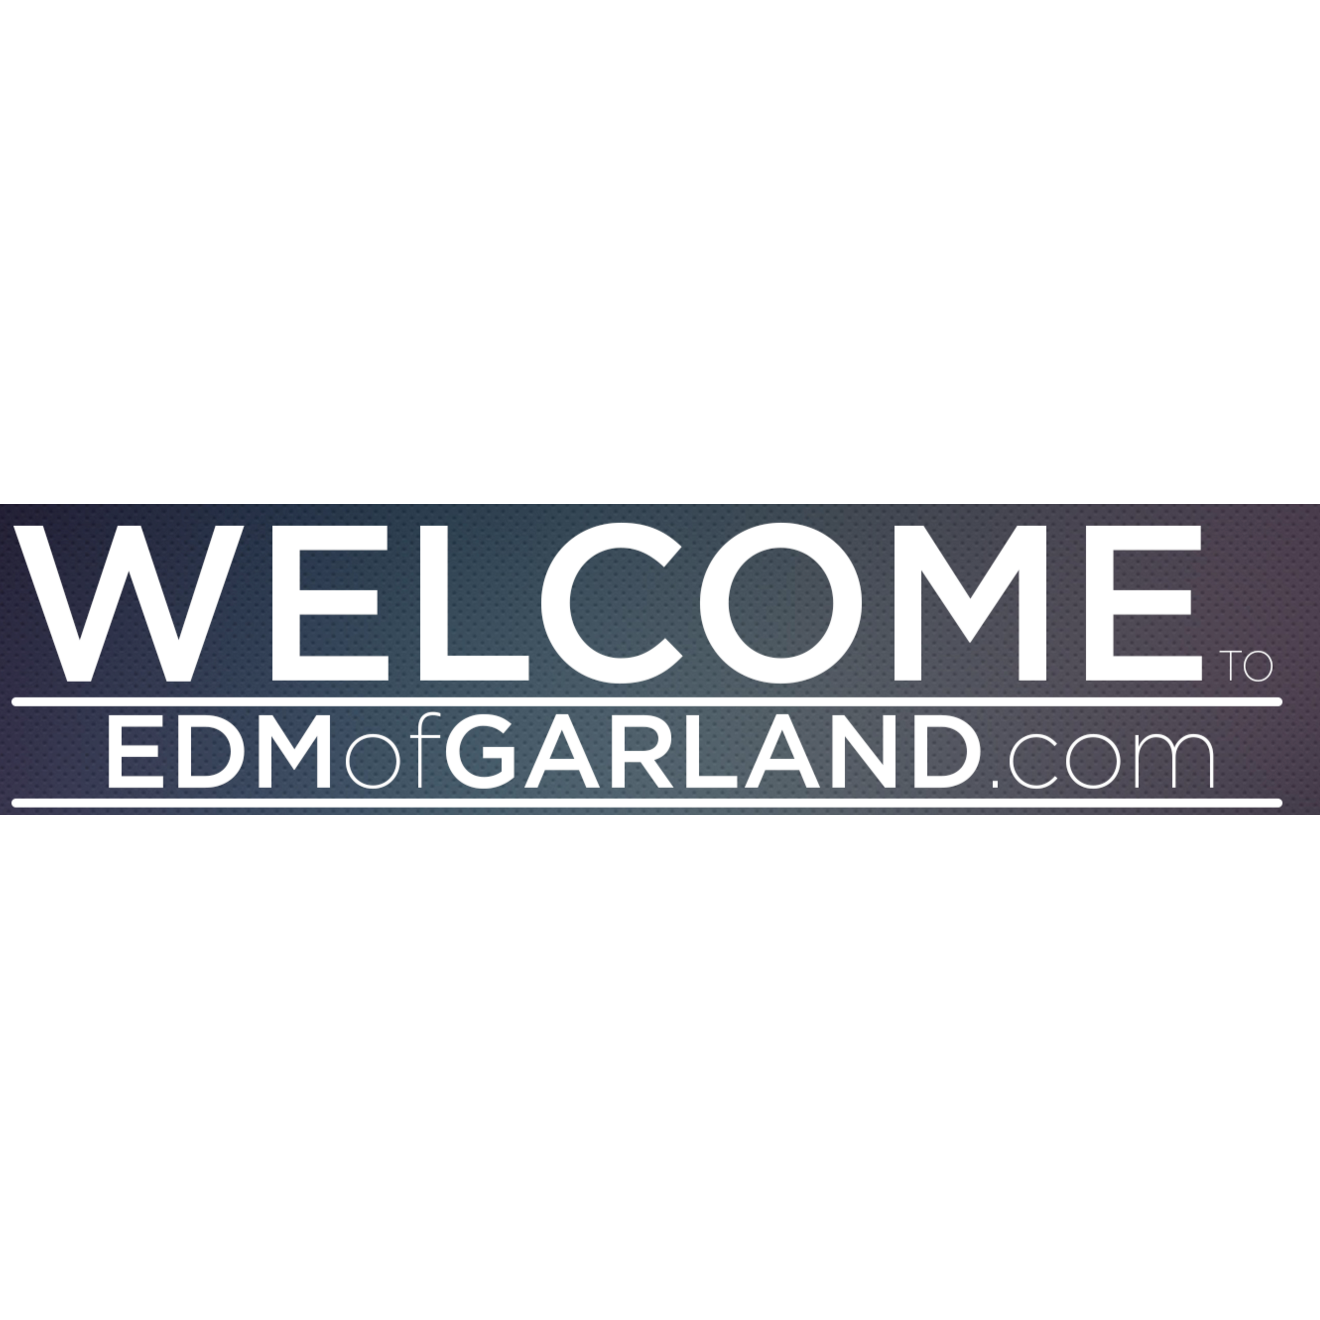 EDM of Garland Inc